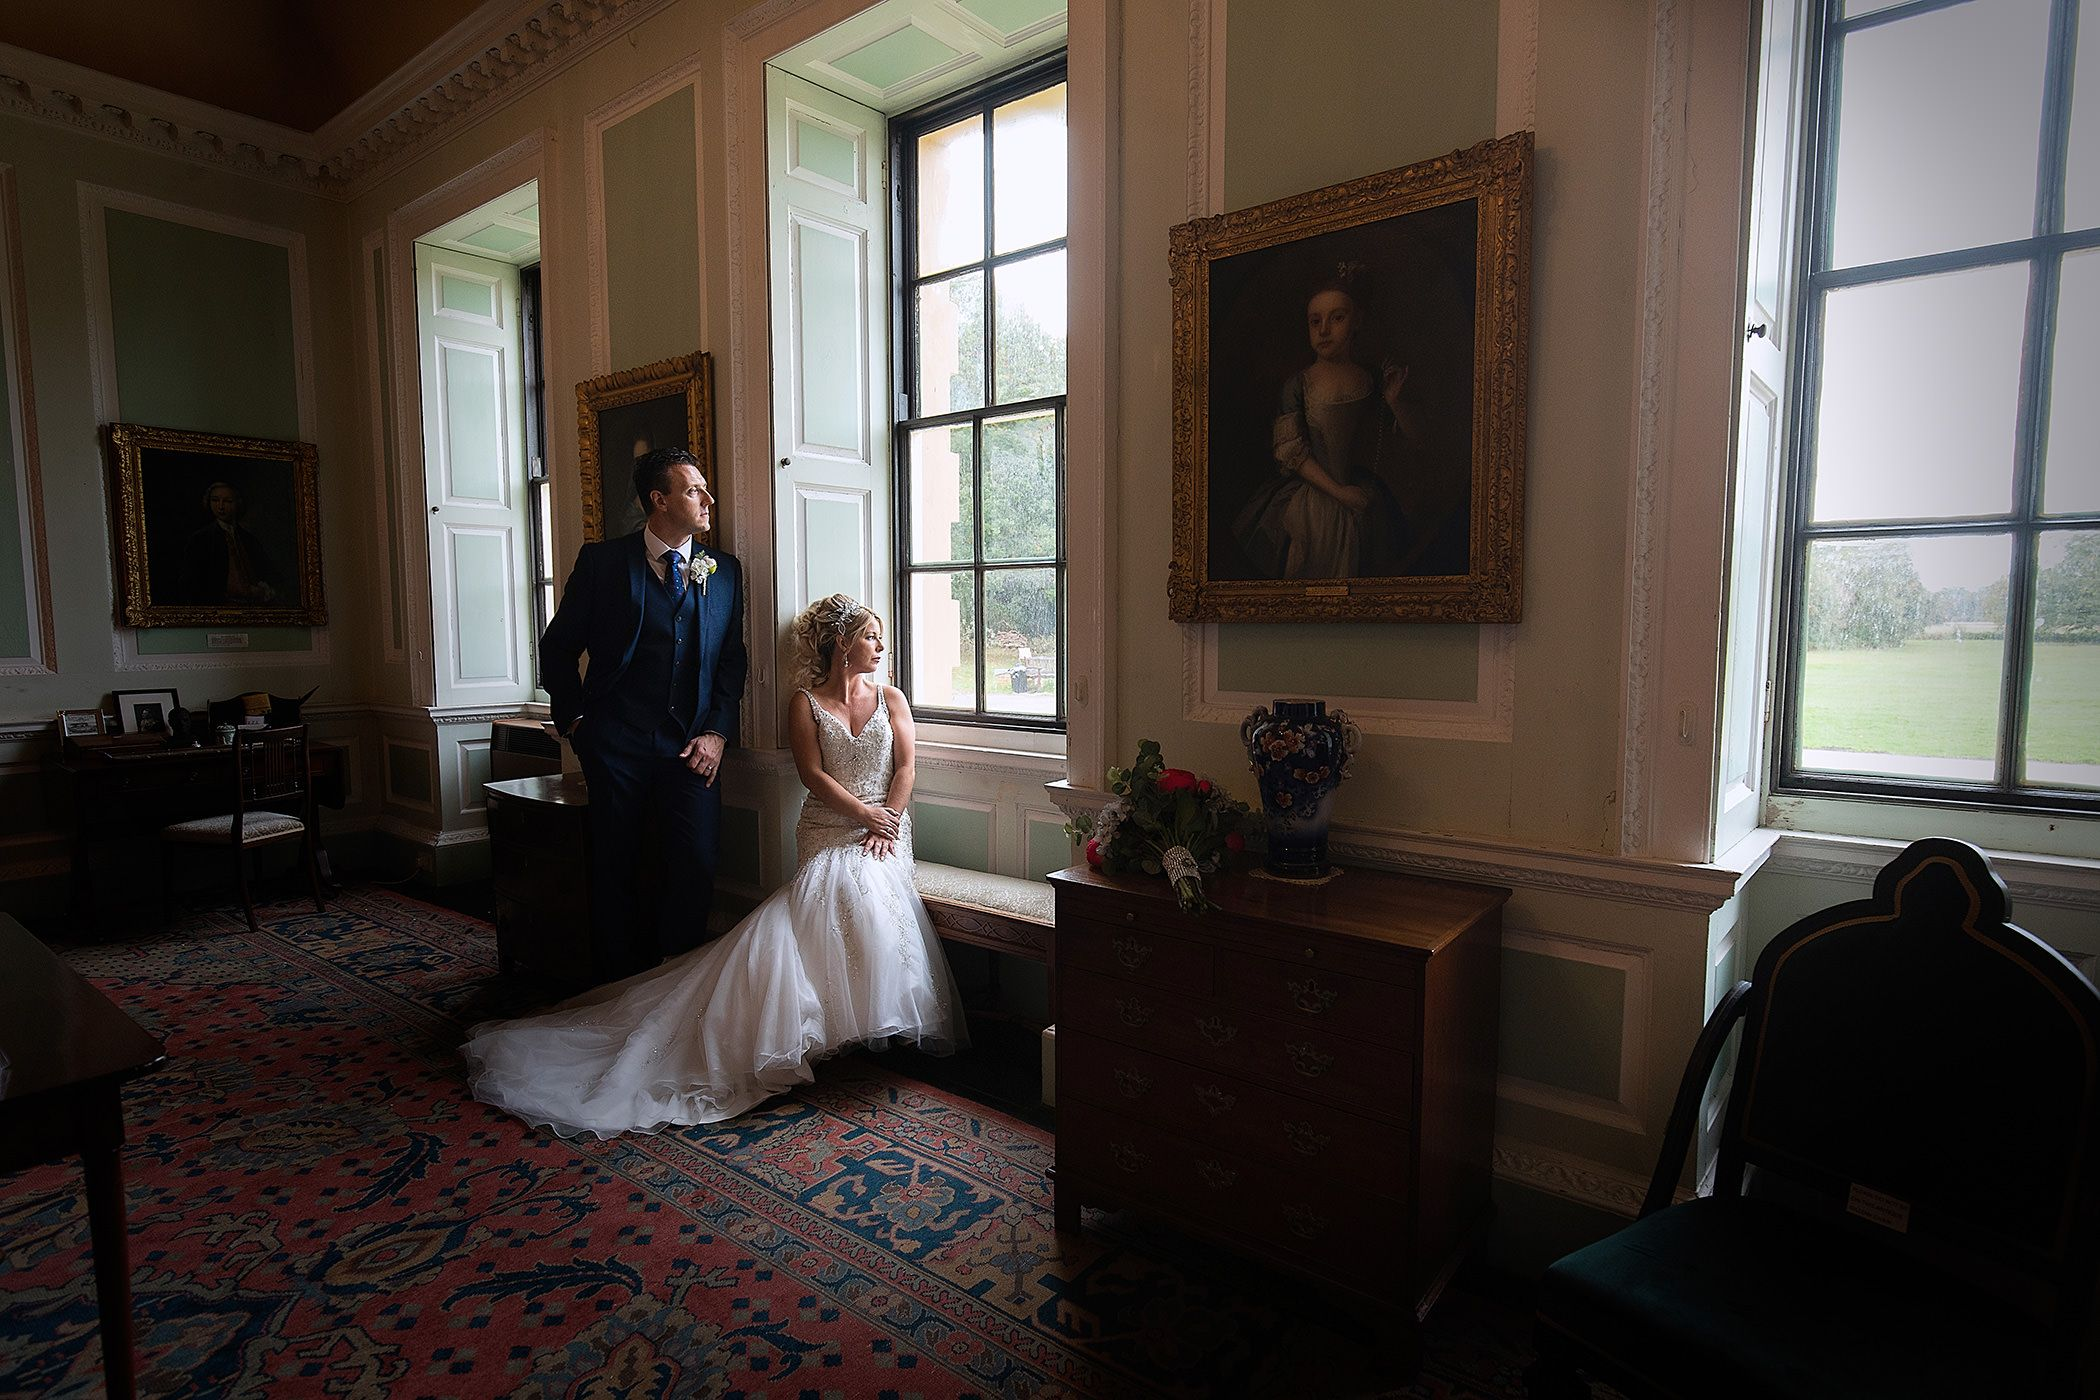 The bride and groom in the front of the house at Lytham Hall